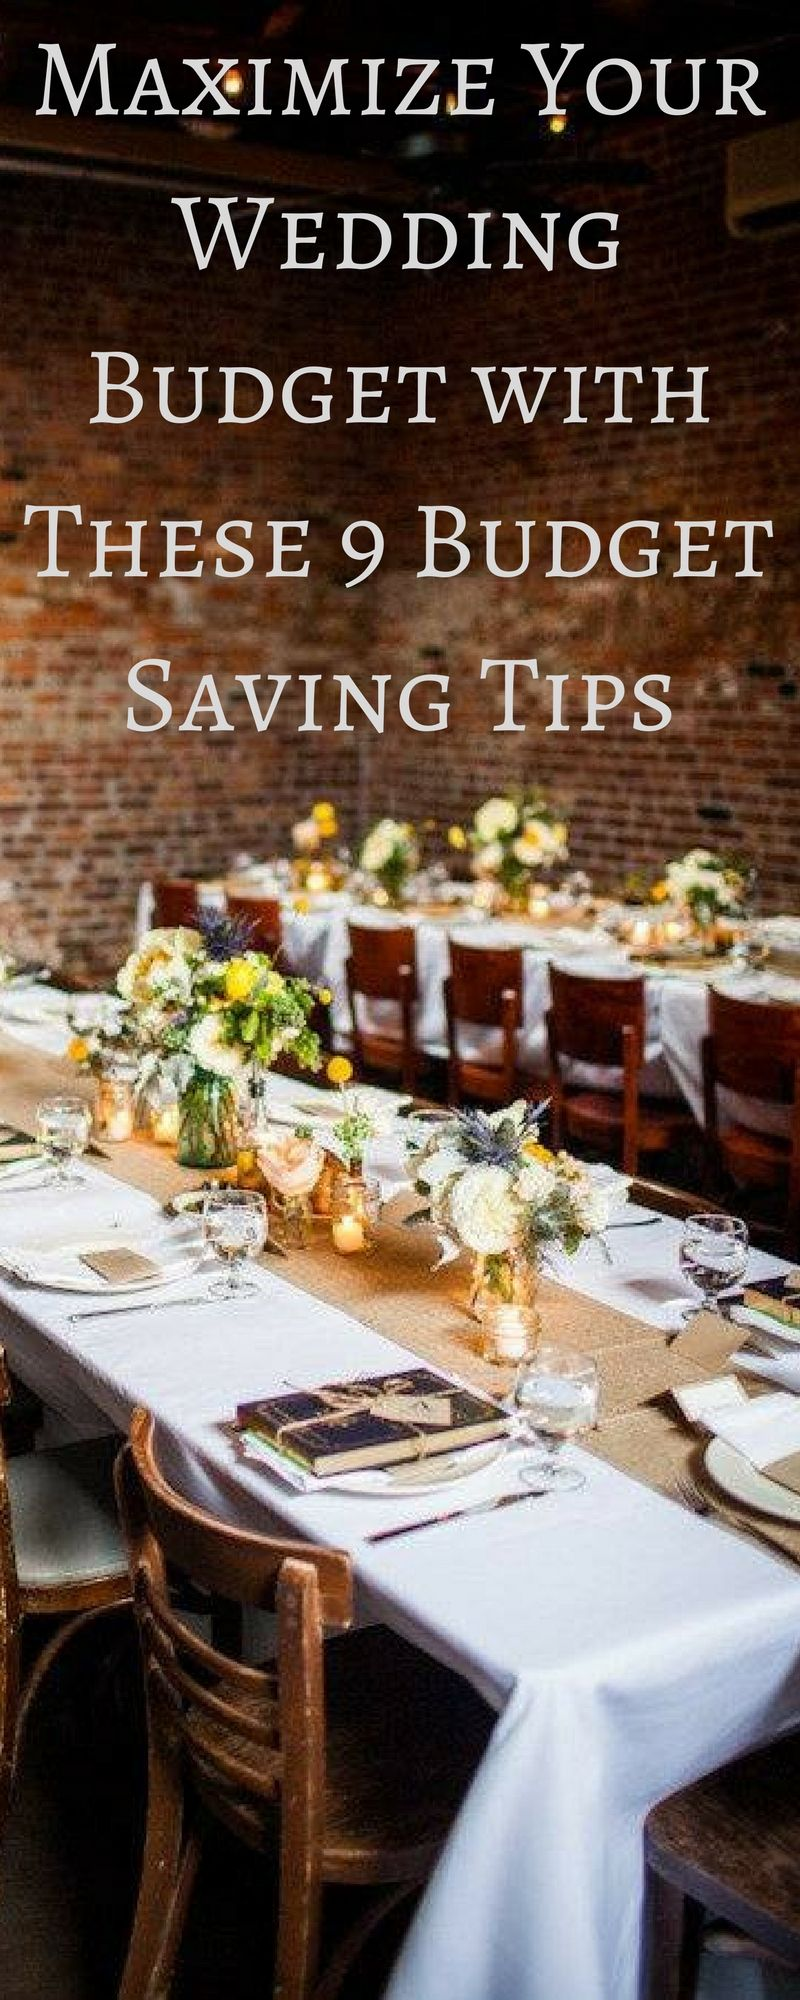 Maximize your wedding budget with these budget saving tips